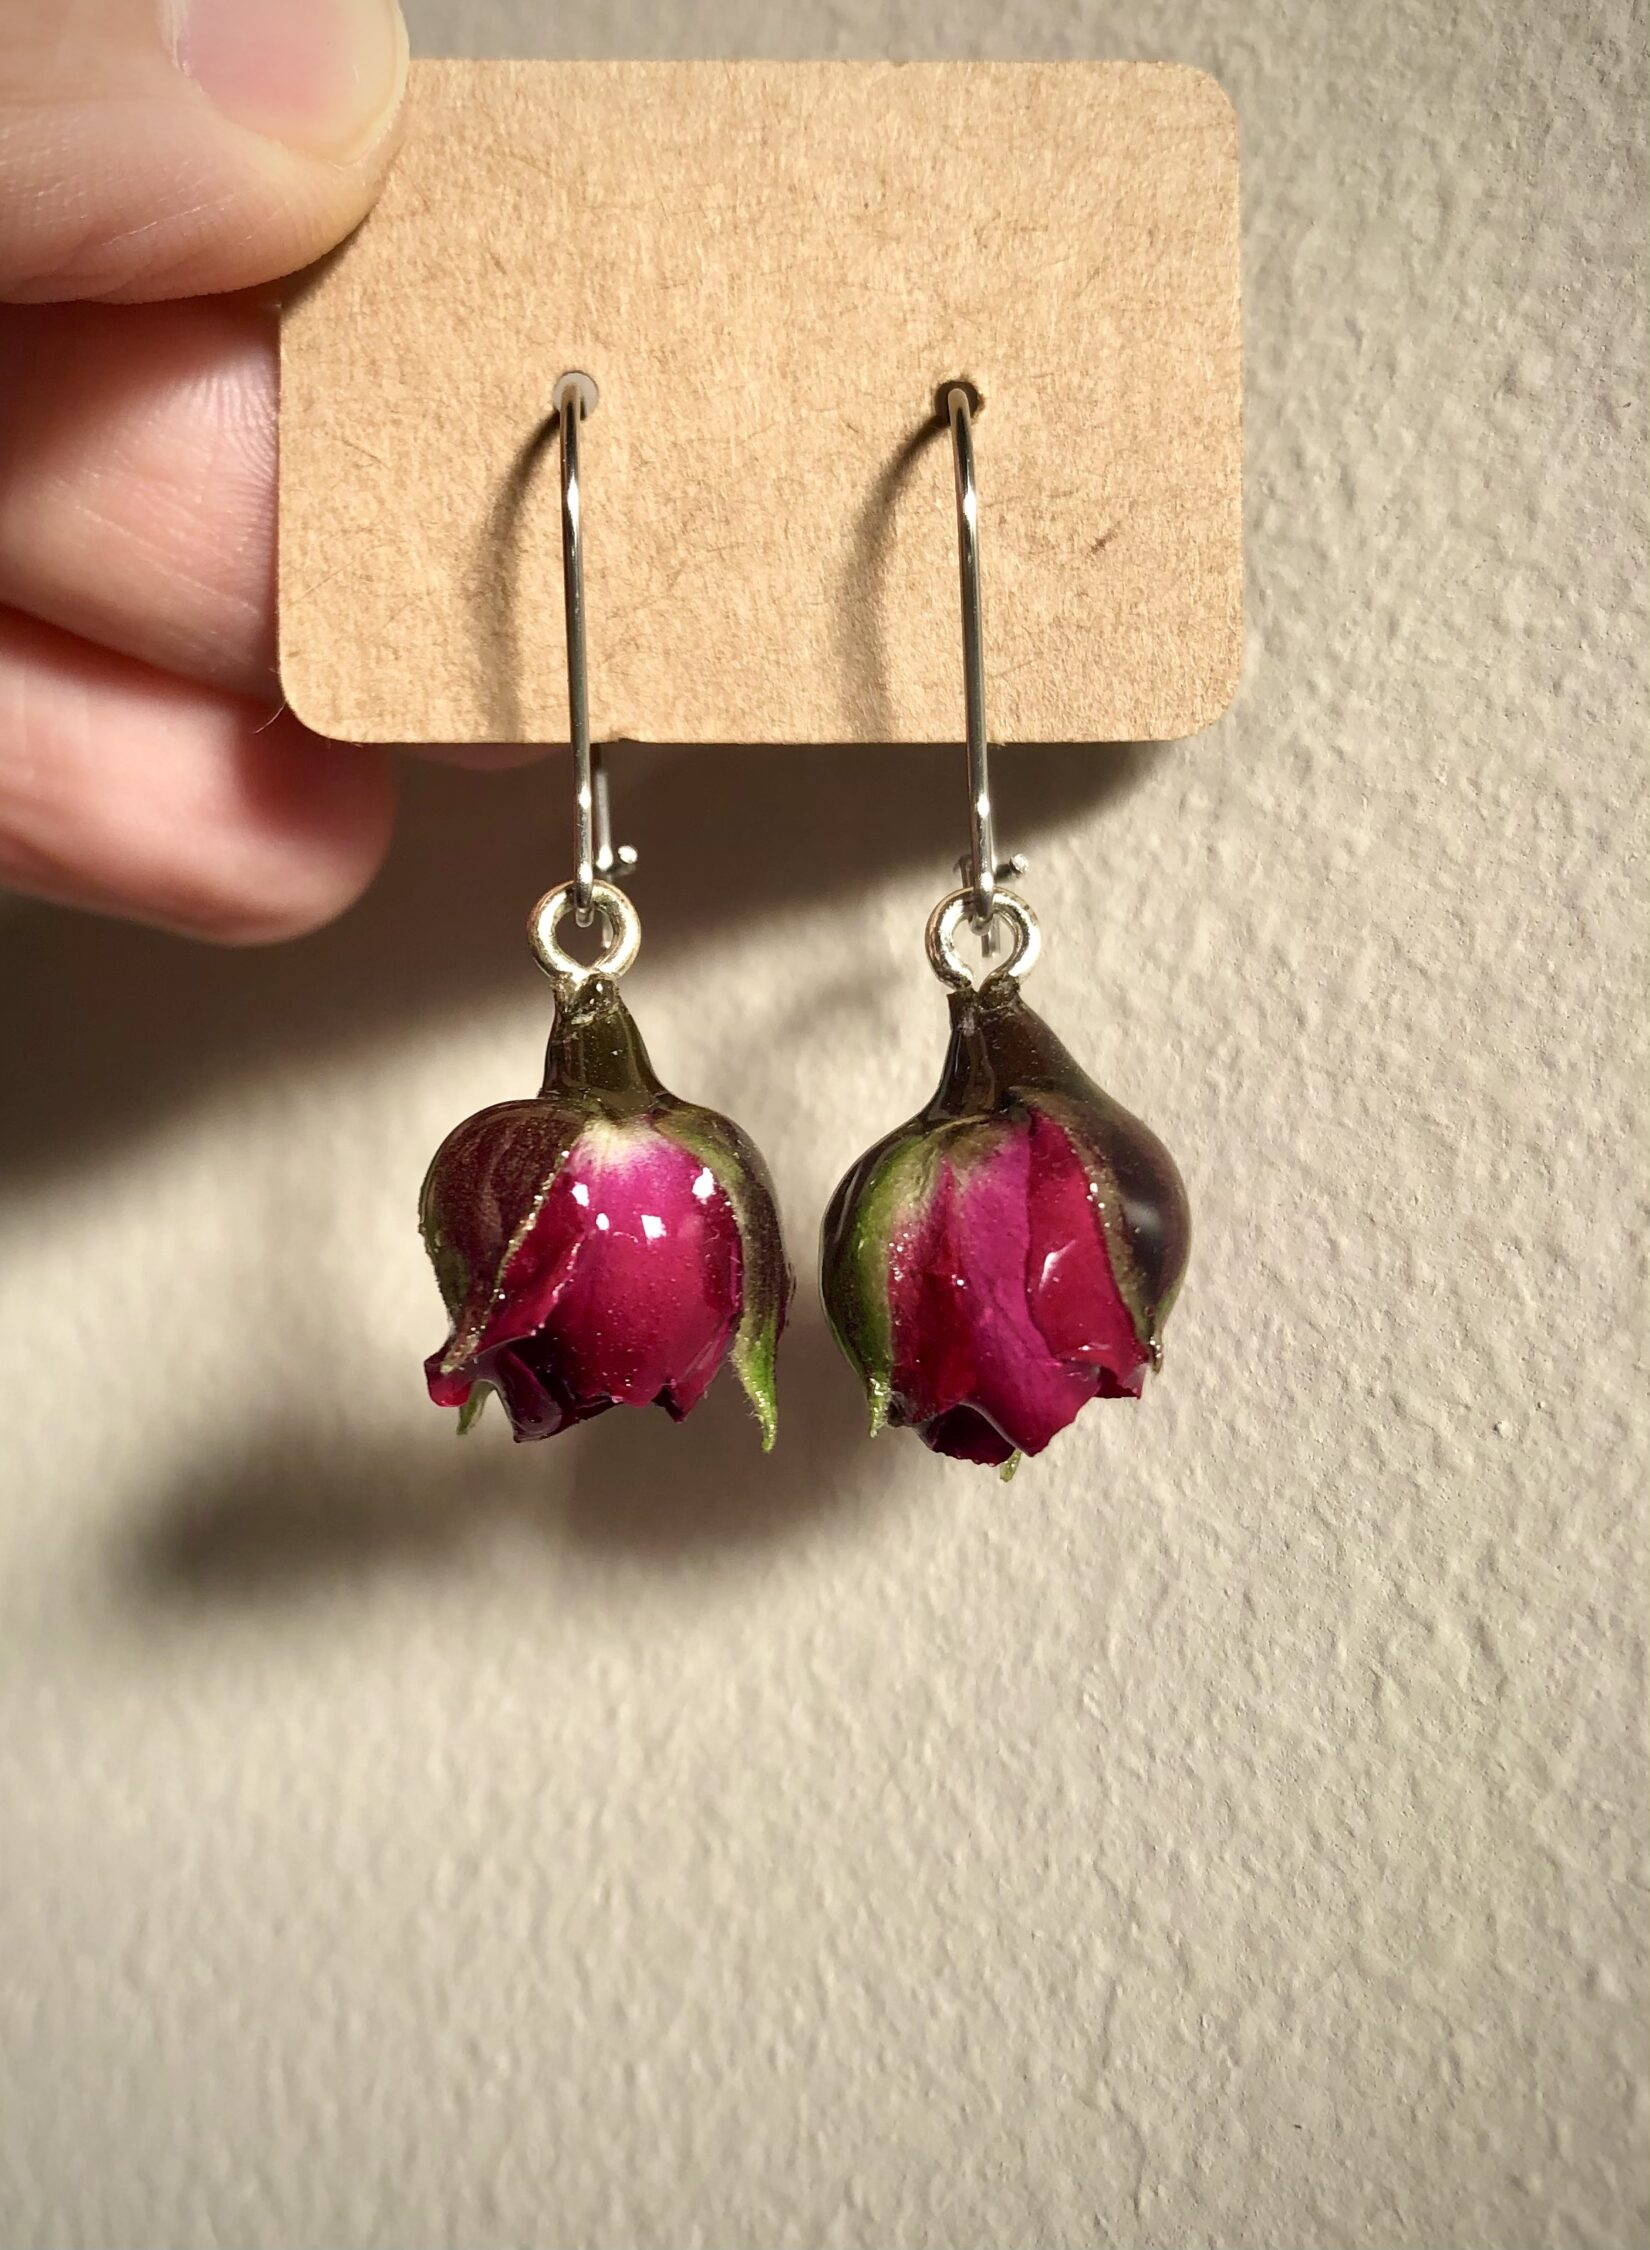 wine colour rose with french hooks via @chooicenz